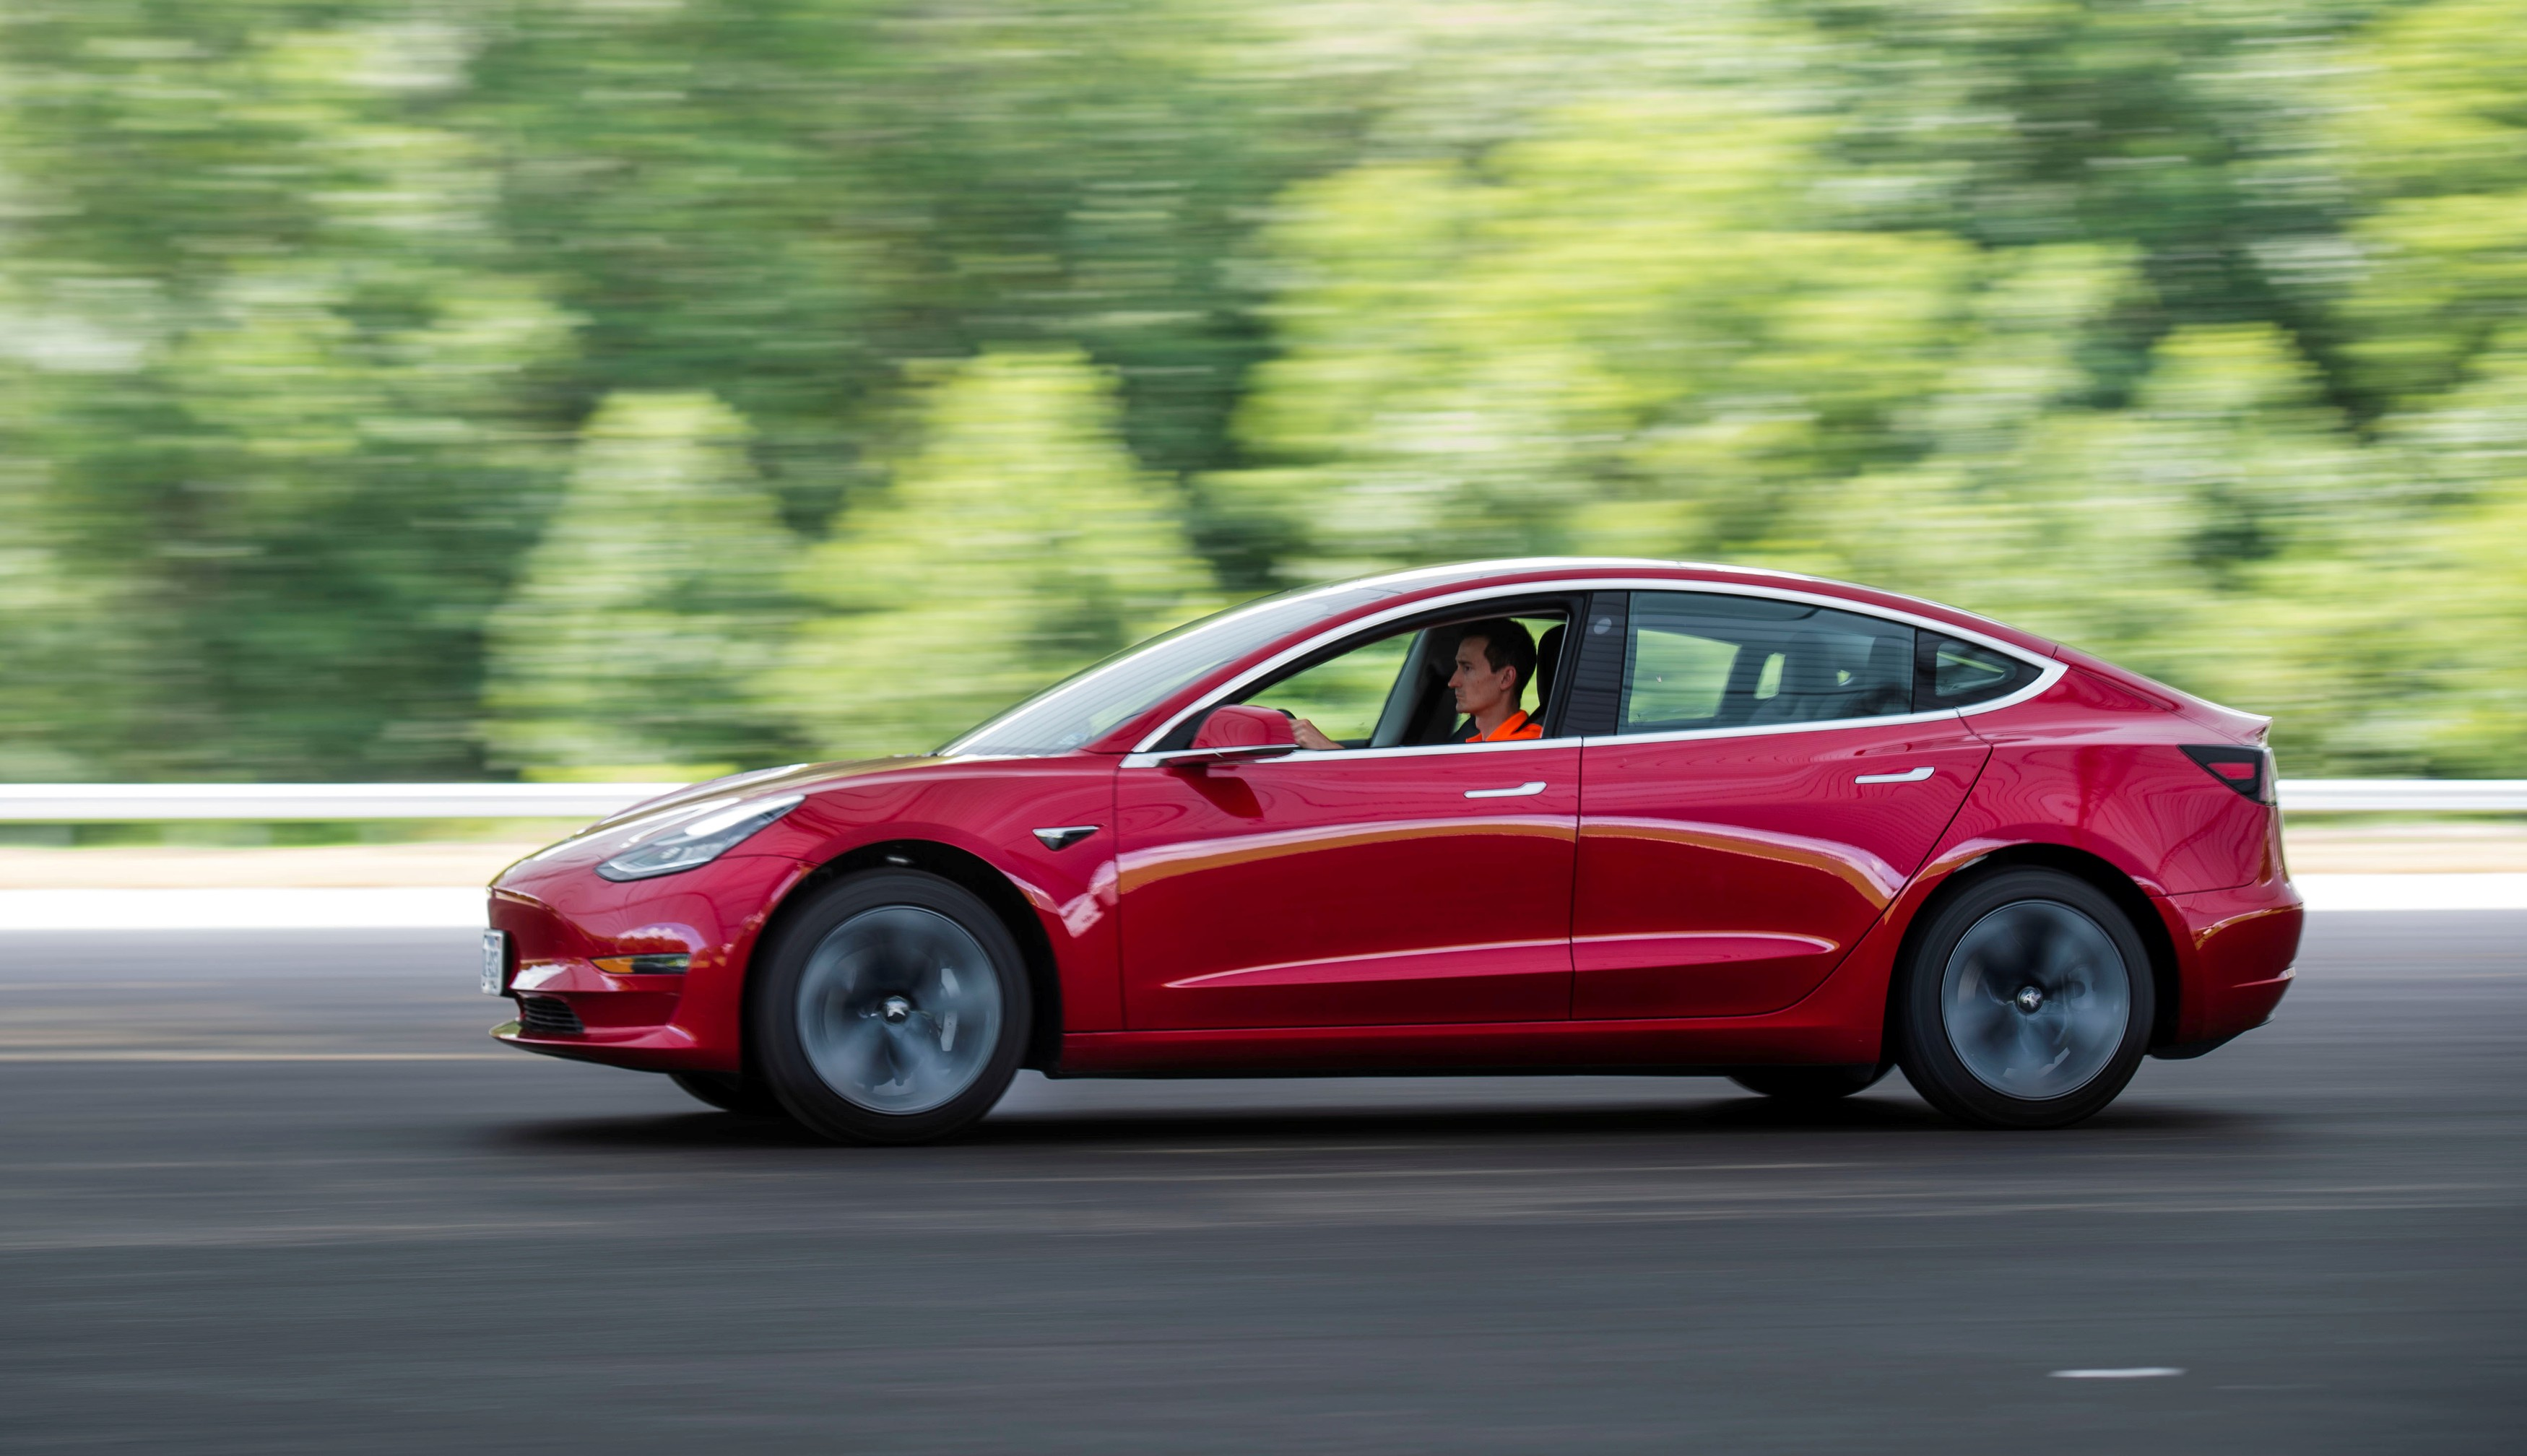 FILE PHOTO: Joe Young, media relations associate for the Insurance Institute for Highway Safety (IIHS), drives a 2018 Tesla Model 3 at the IIHS-HLDI Vehicle Research Center in Ruckersville, Virginia, U.S., July 22, 2019. Picture taken July 22, 2019. REUTERS/Amanda Voisard/File Photo